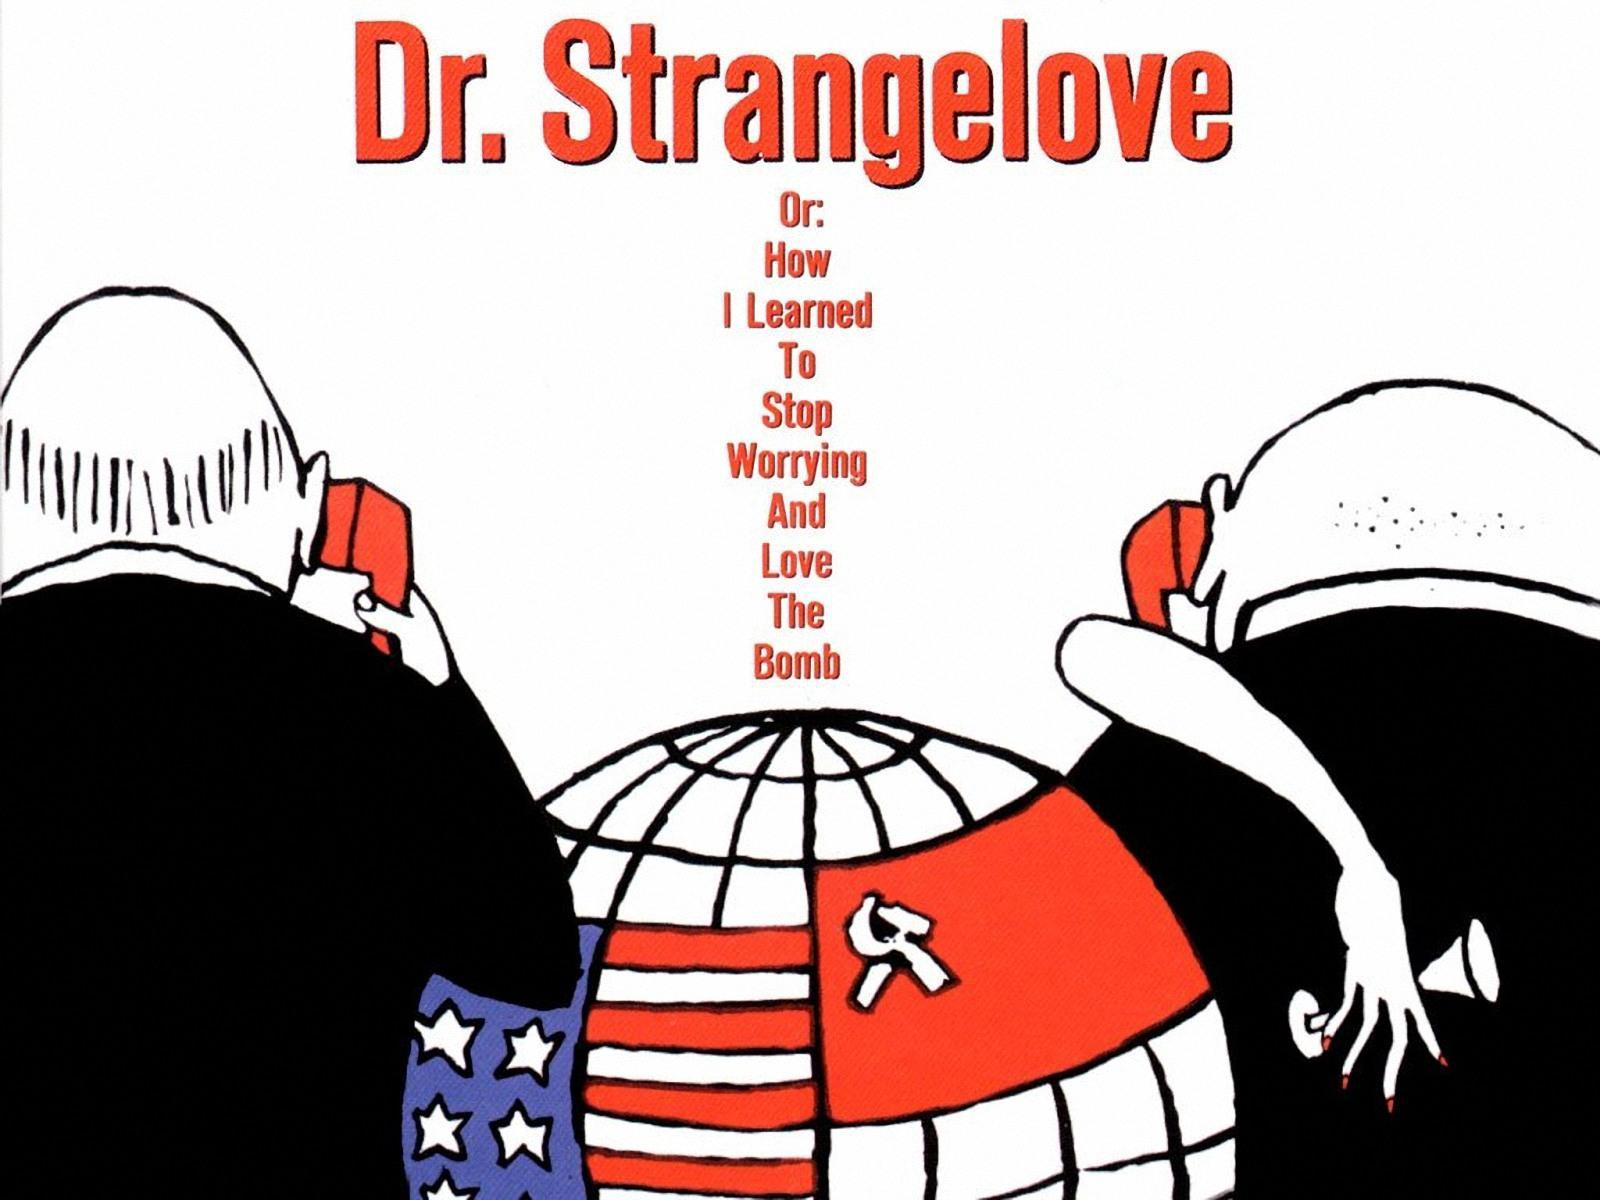 Download wallpapers 1600x1200 dr strangelove or how i learned to stop